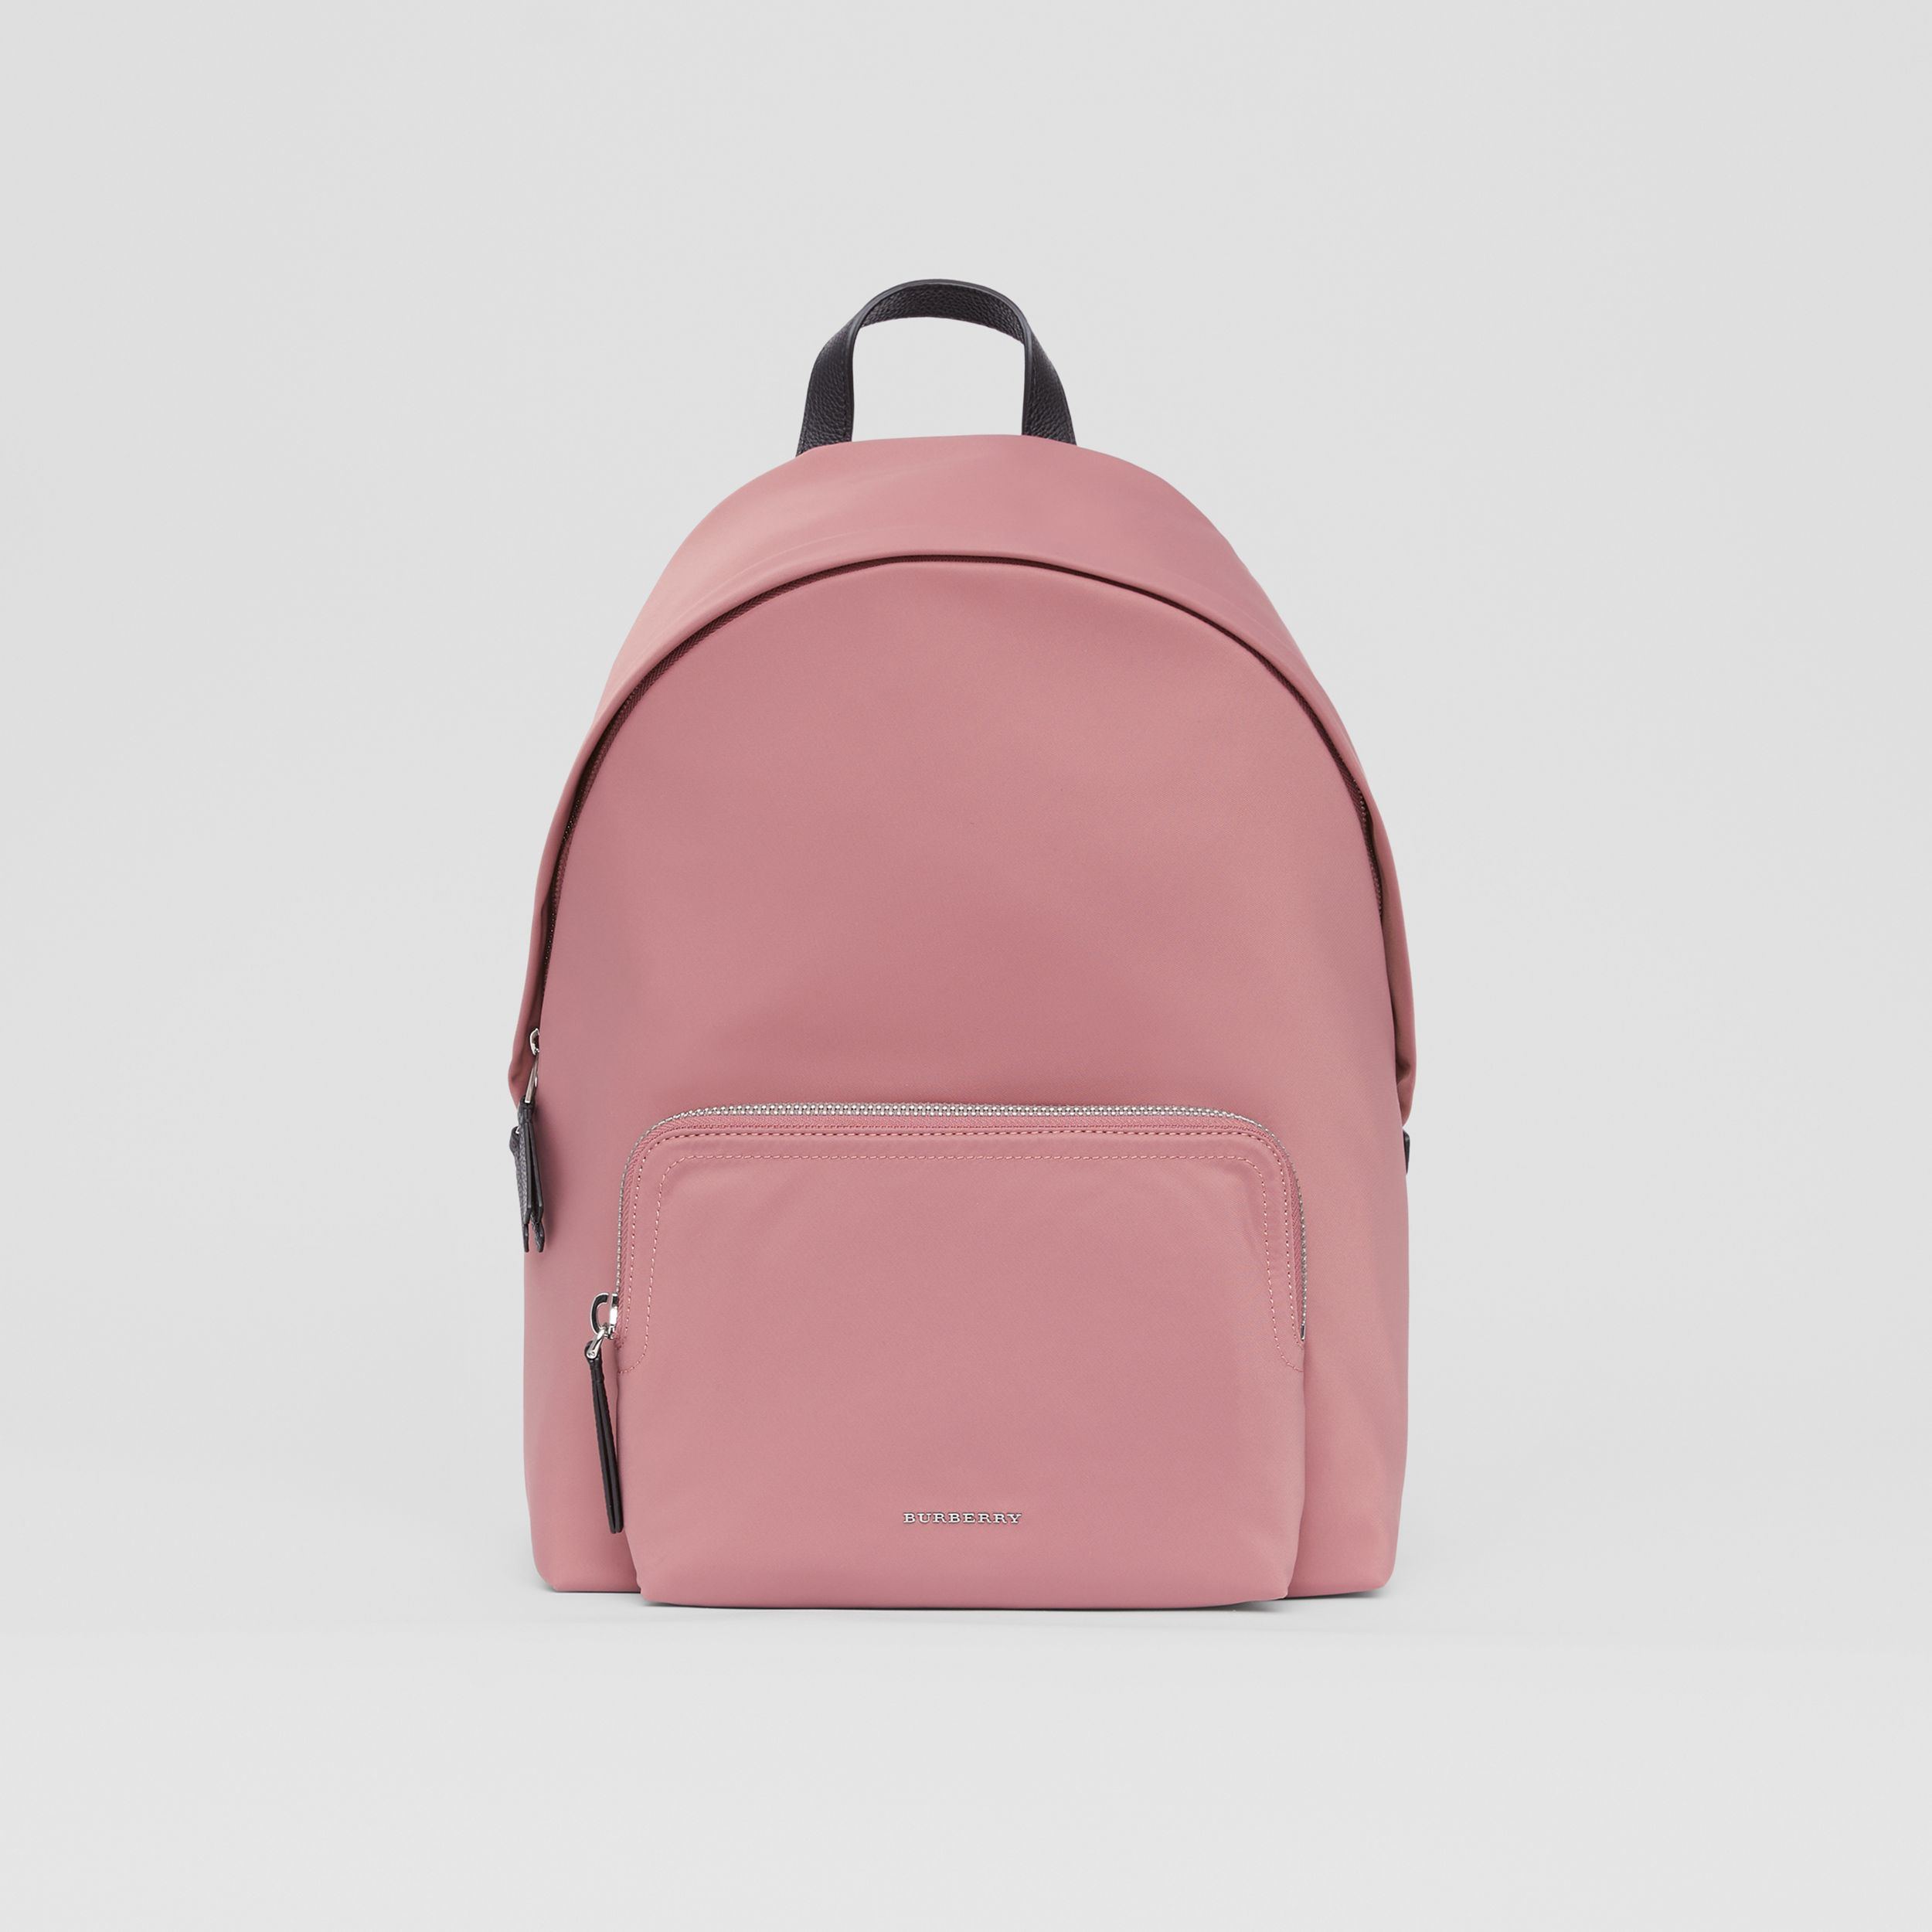 Logo Detail Backpack in Mauve Pink | Burberry - 1